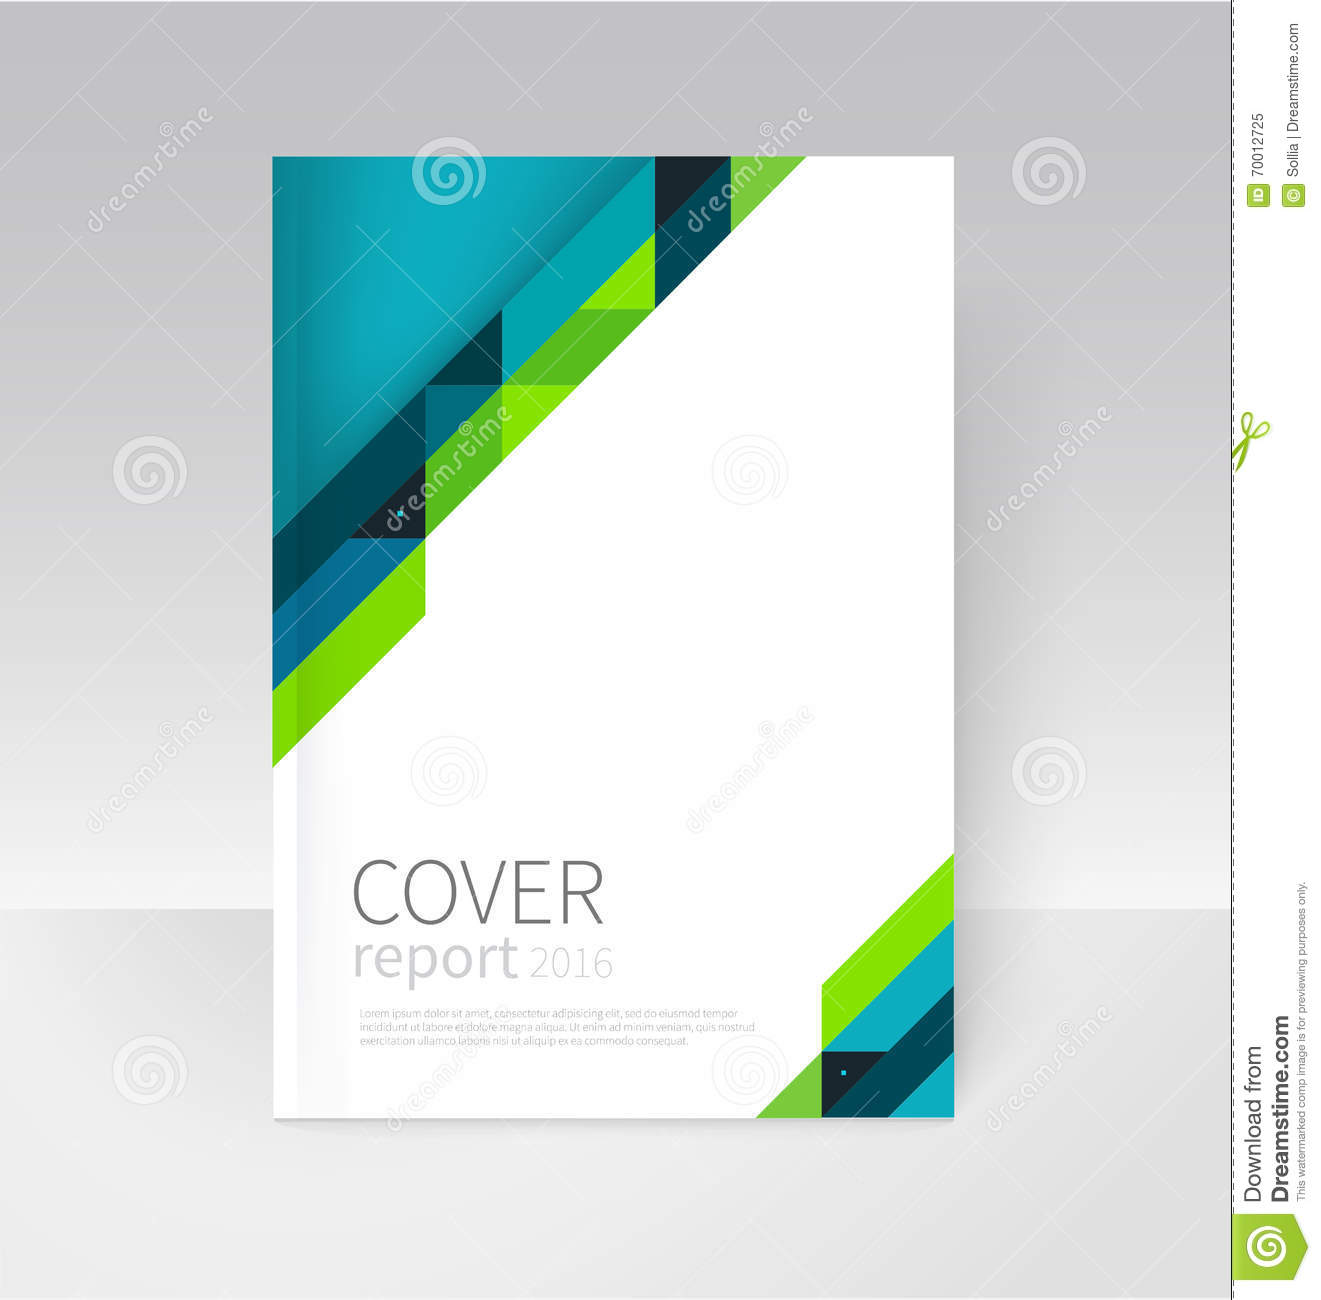 Brochure Flyer Poster Annual Report Cover Template Stock Vector  Illustration of concept